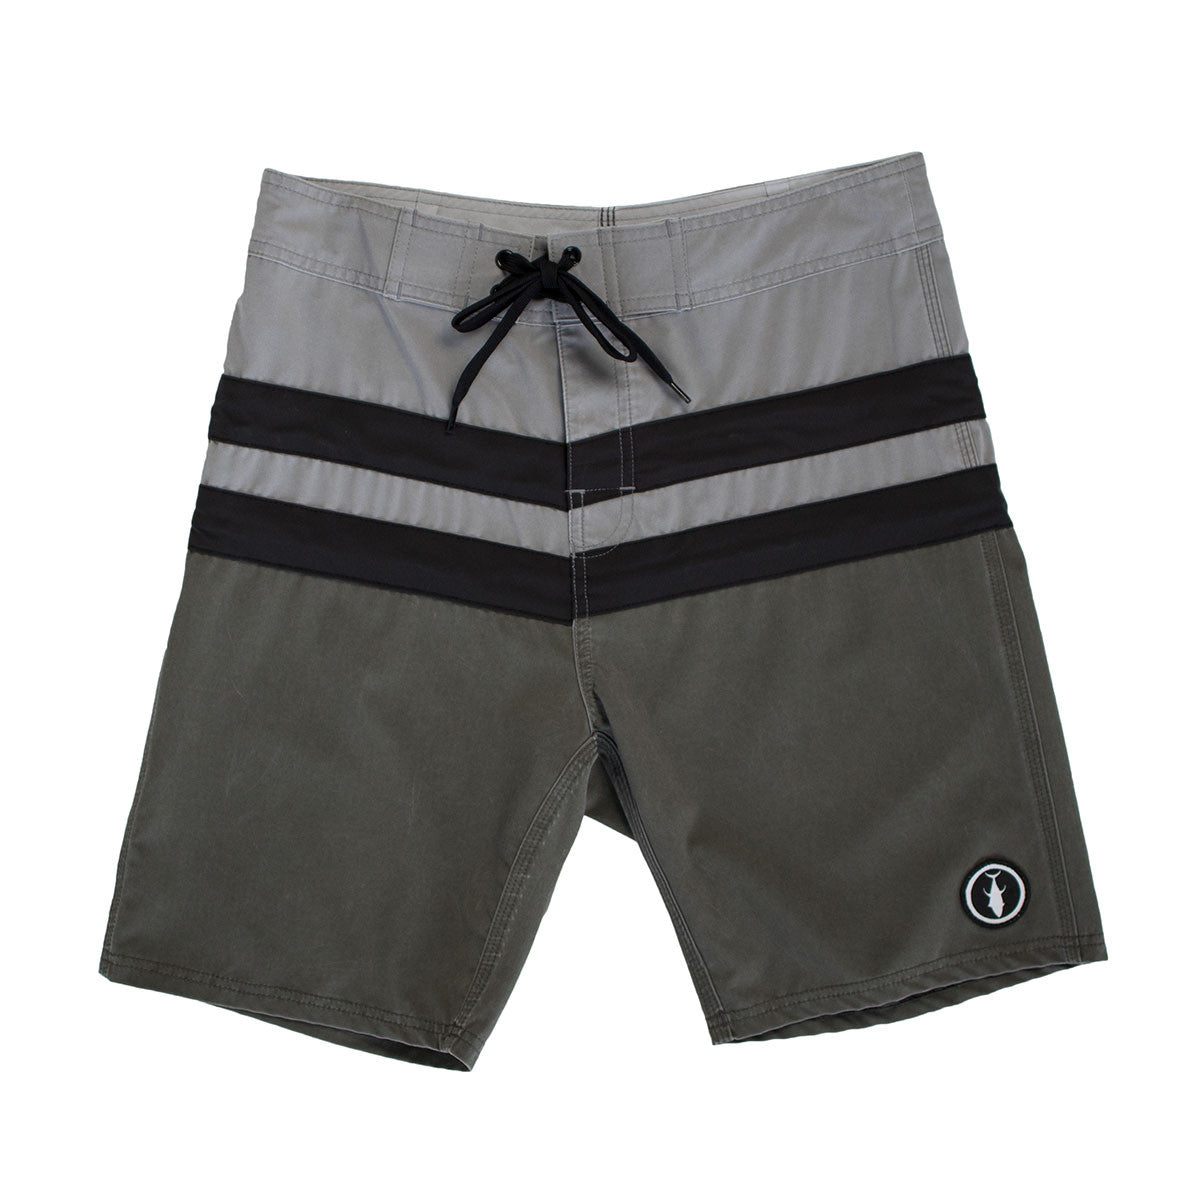 2 Stroke Boardshorts - Grey/Black